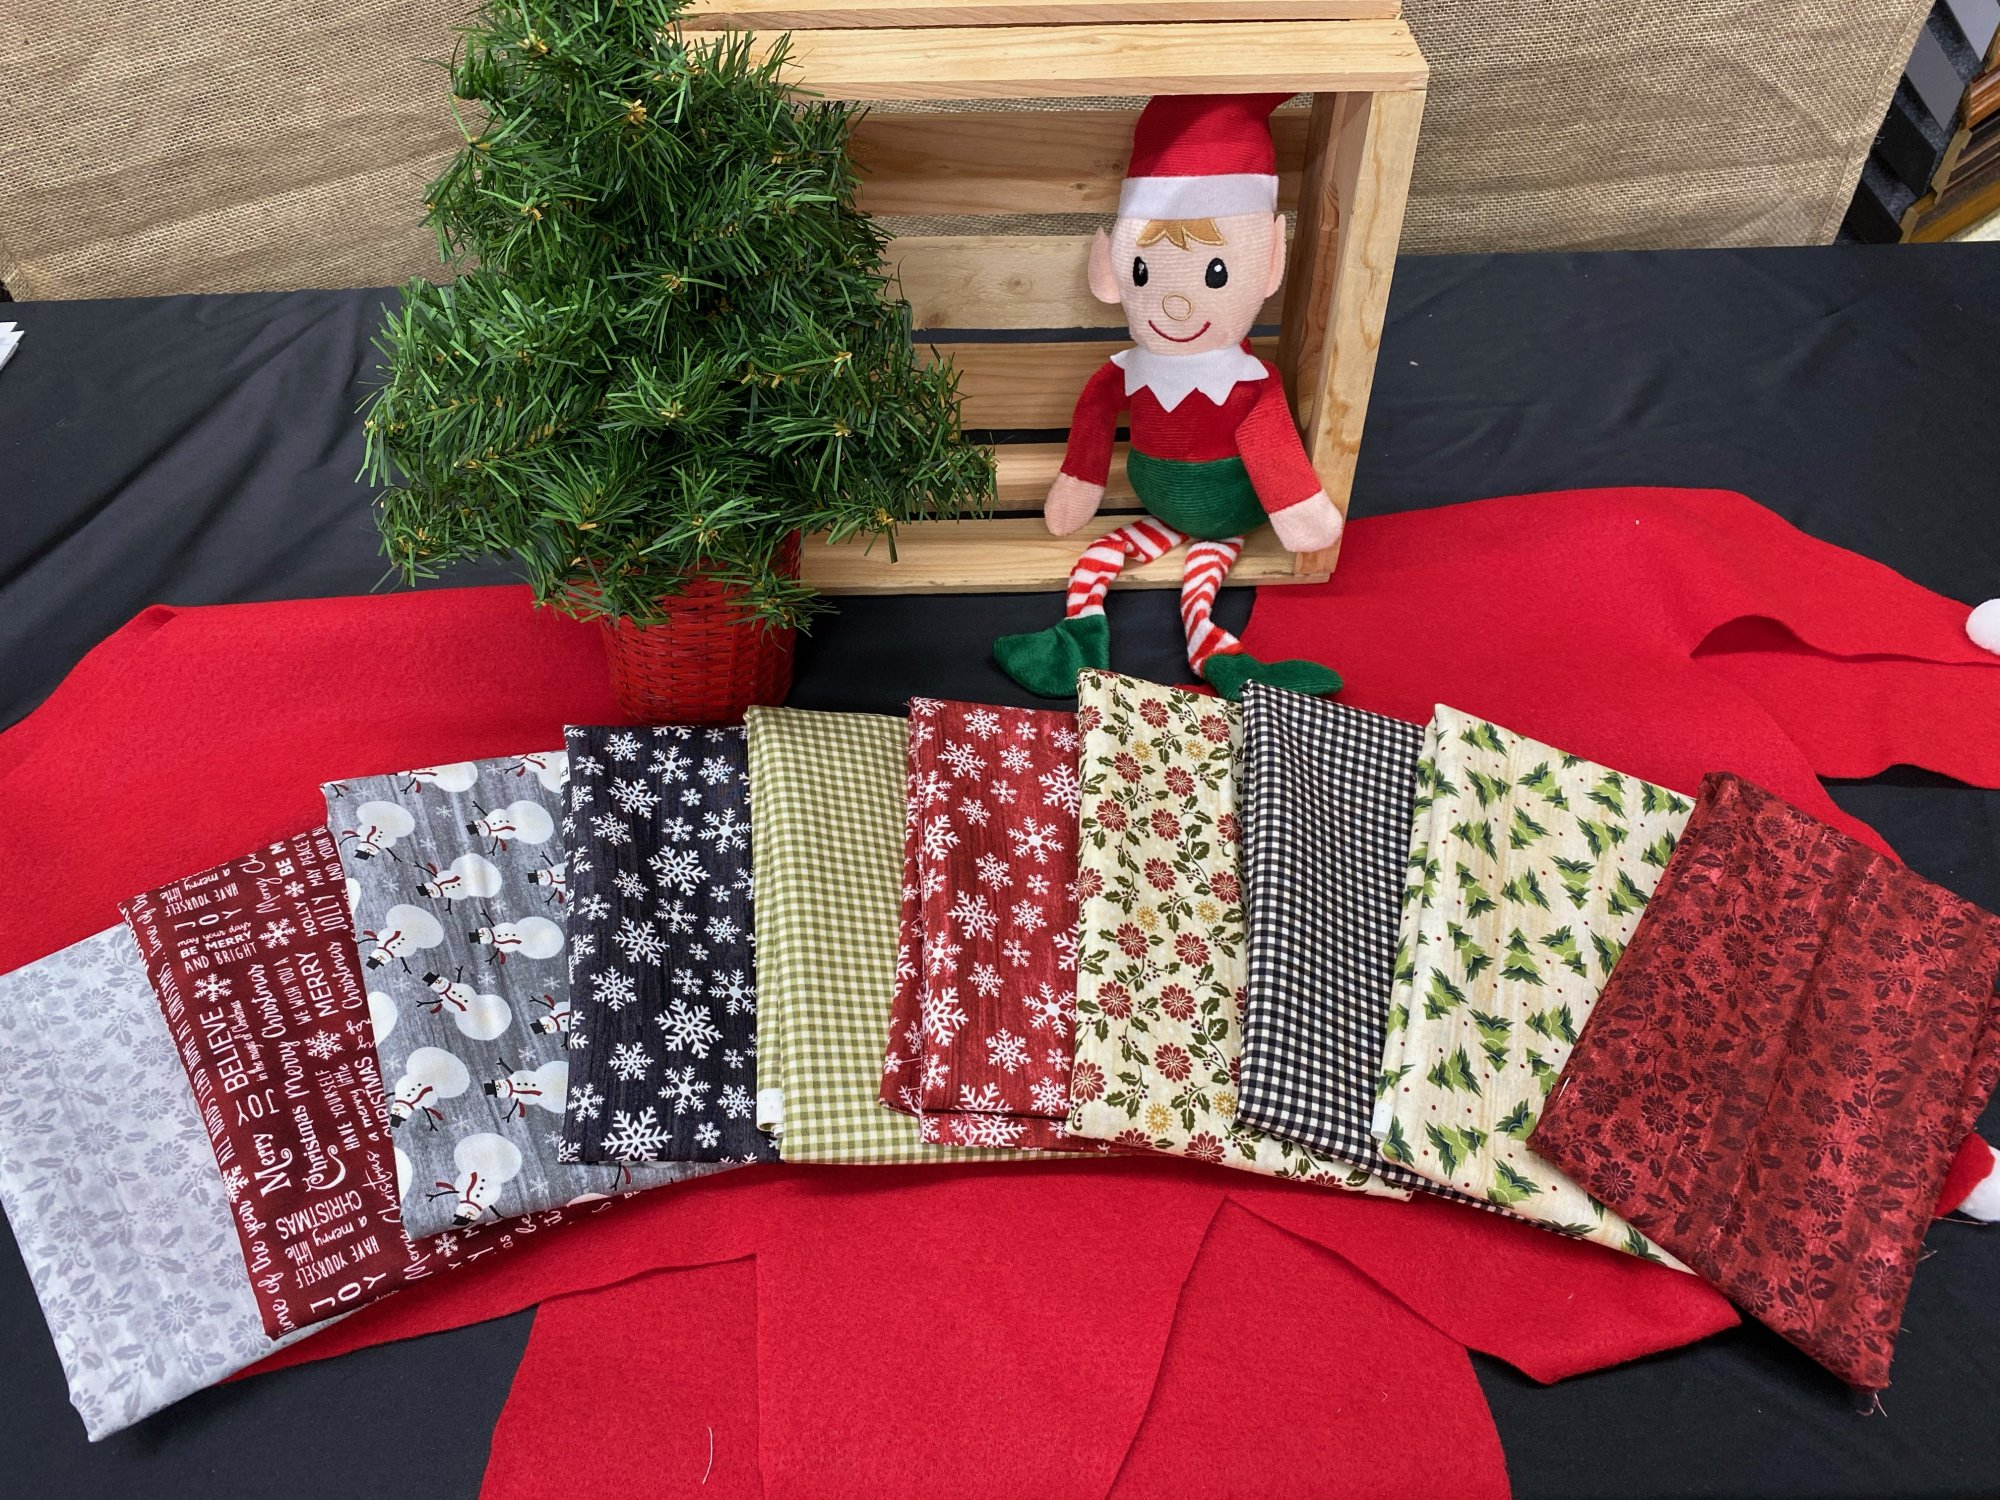 Rustic Village Christmas Fat Qtr Bundle #1